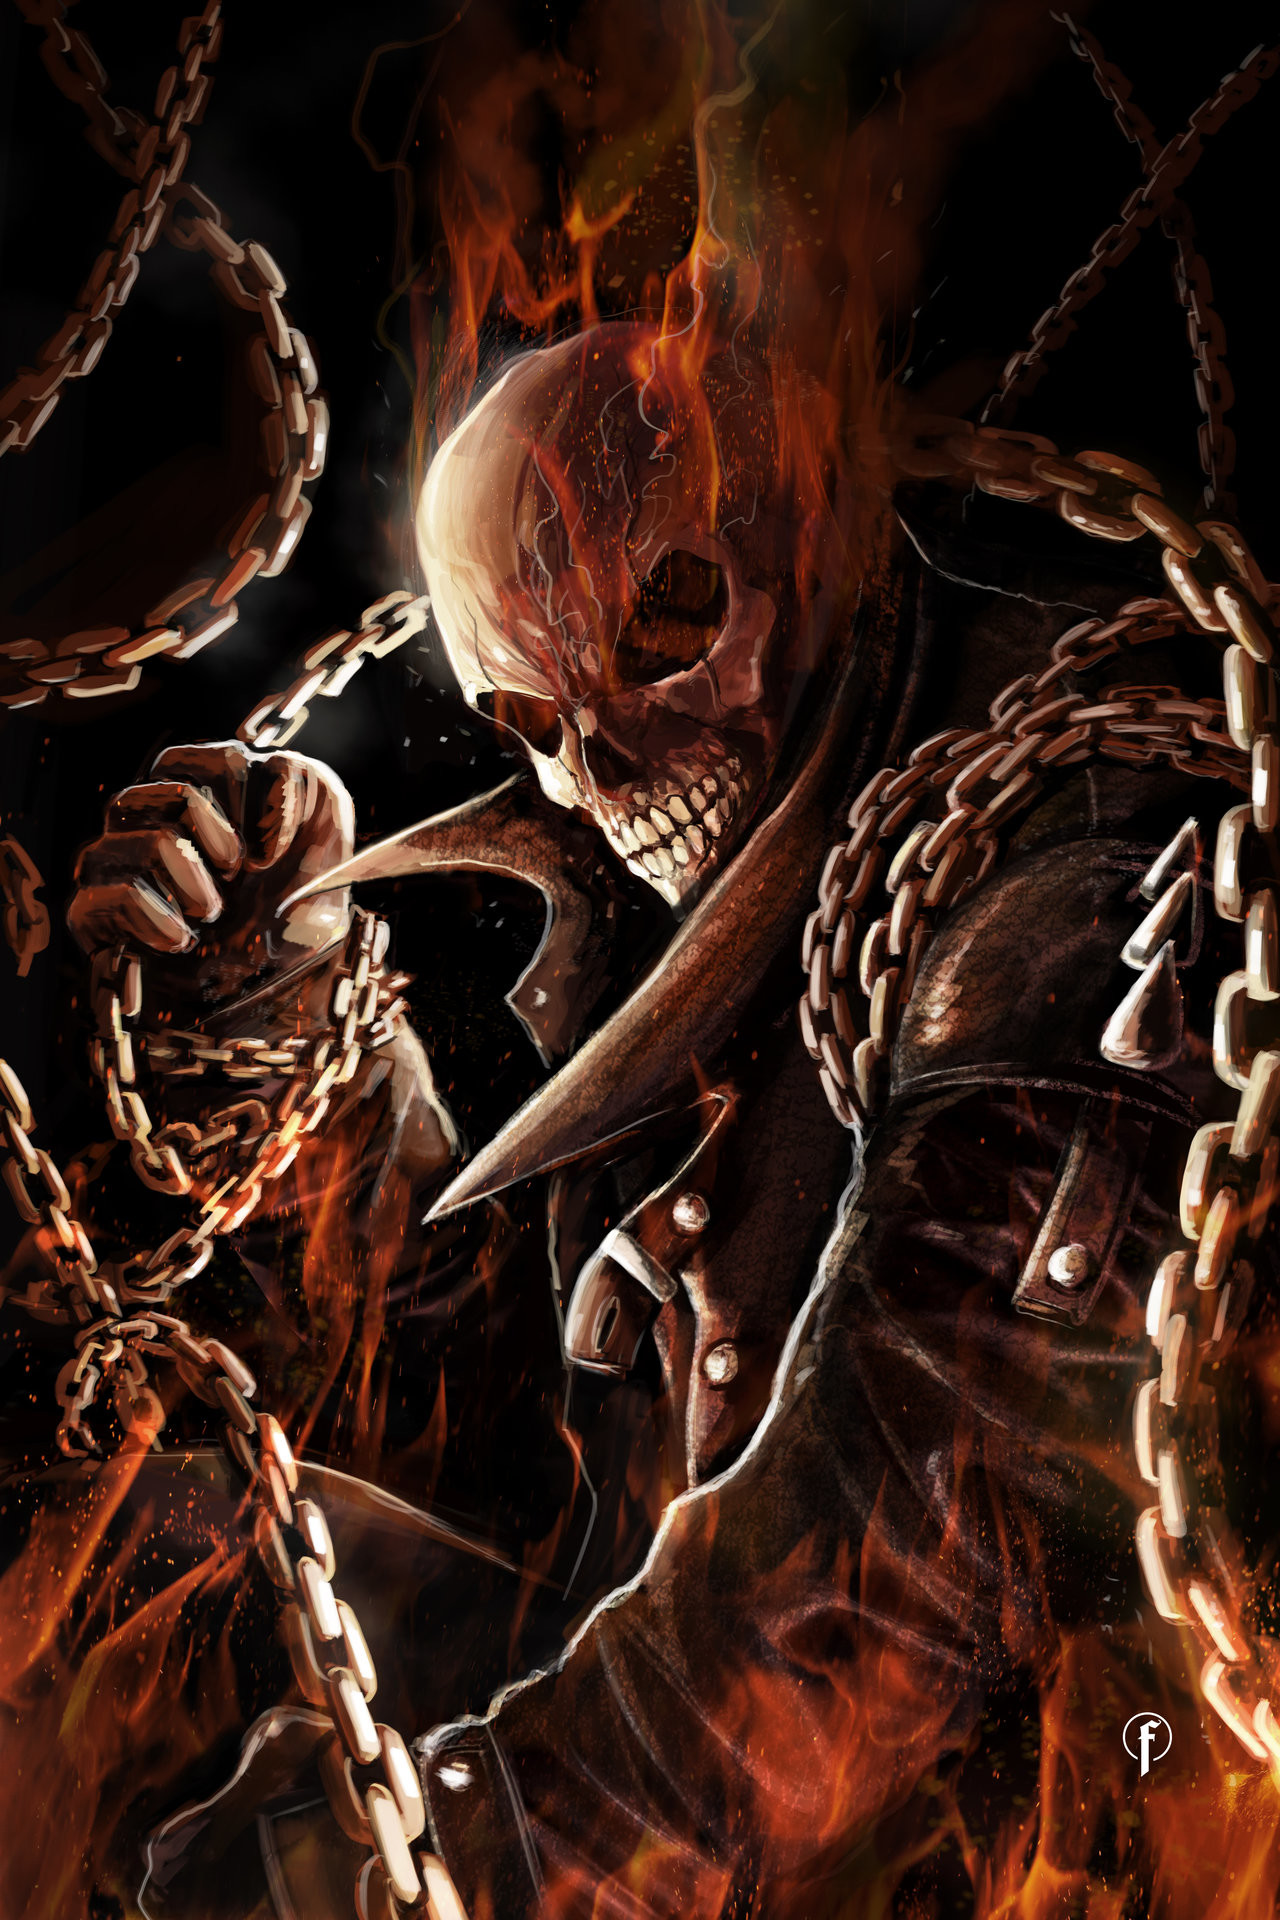 3840x1600 Ghost Rider Wallpaper By Gojirafan1994